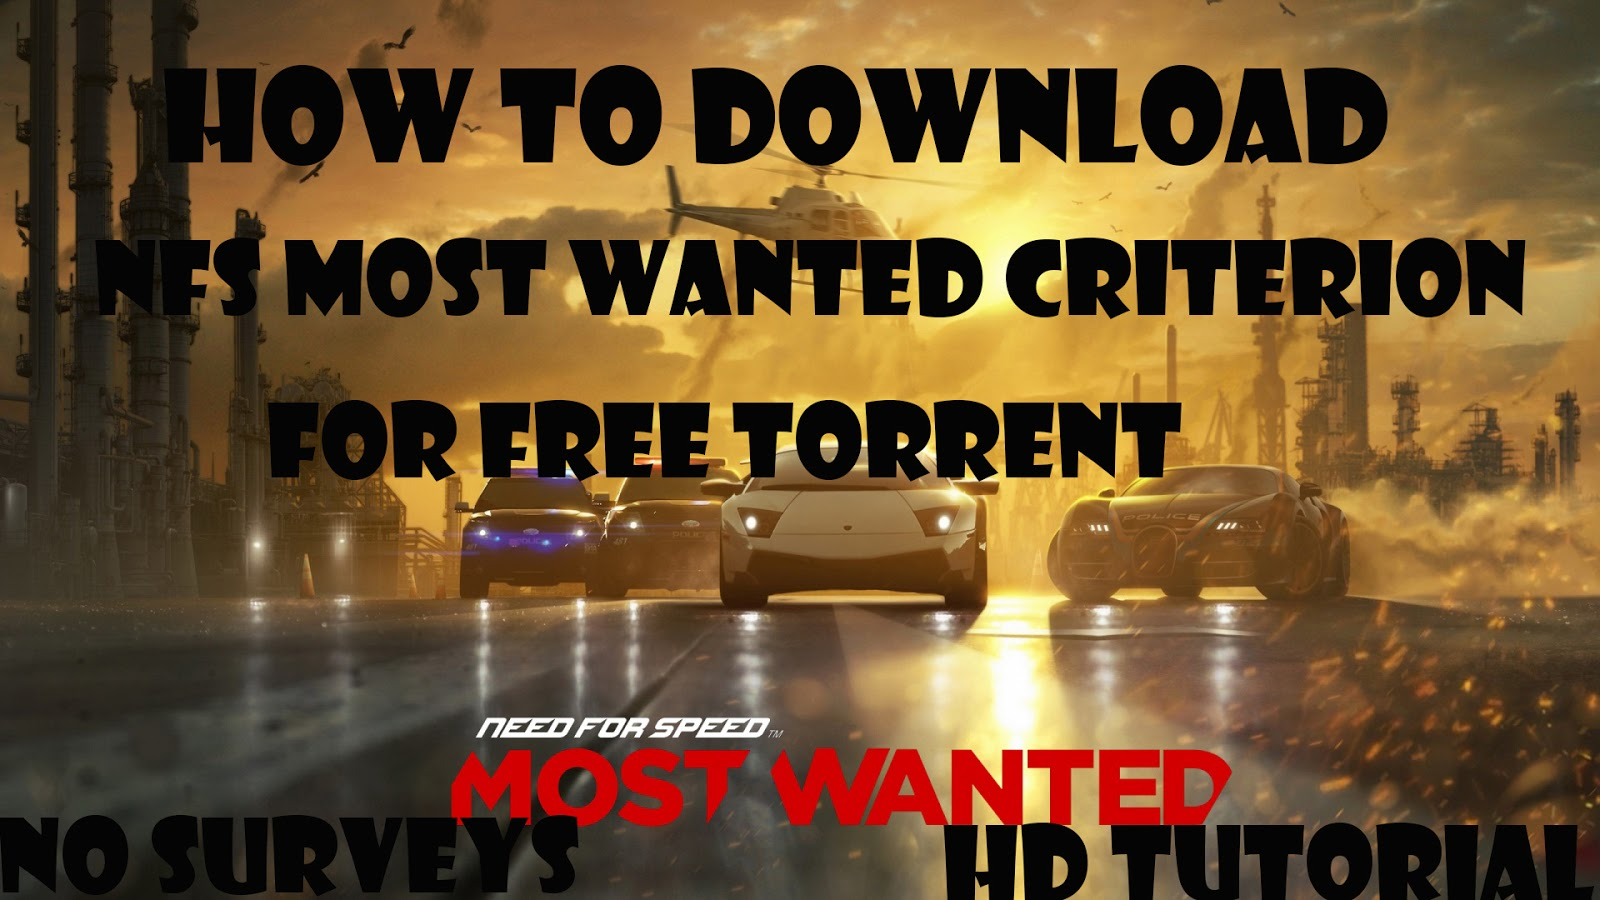 Download need for speed most wanted 2012 criterion full for Need for speed most wanted full